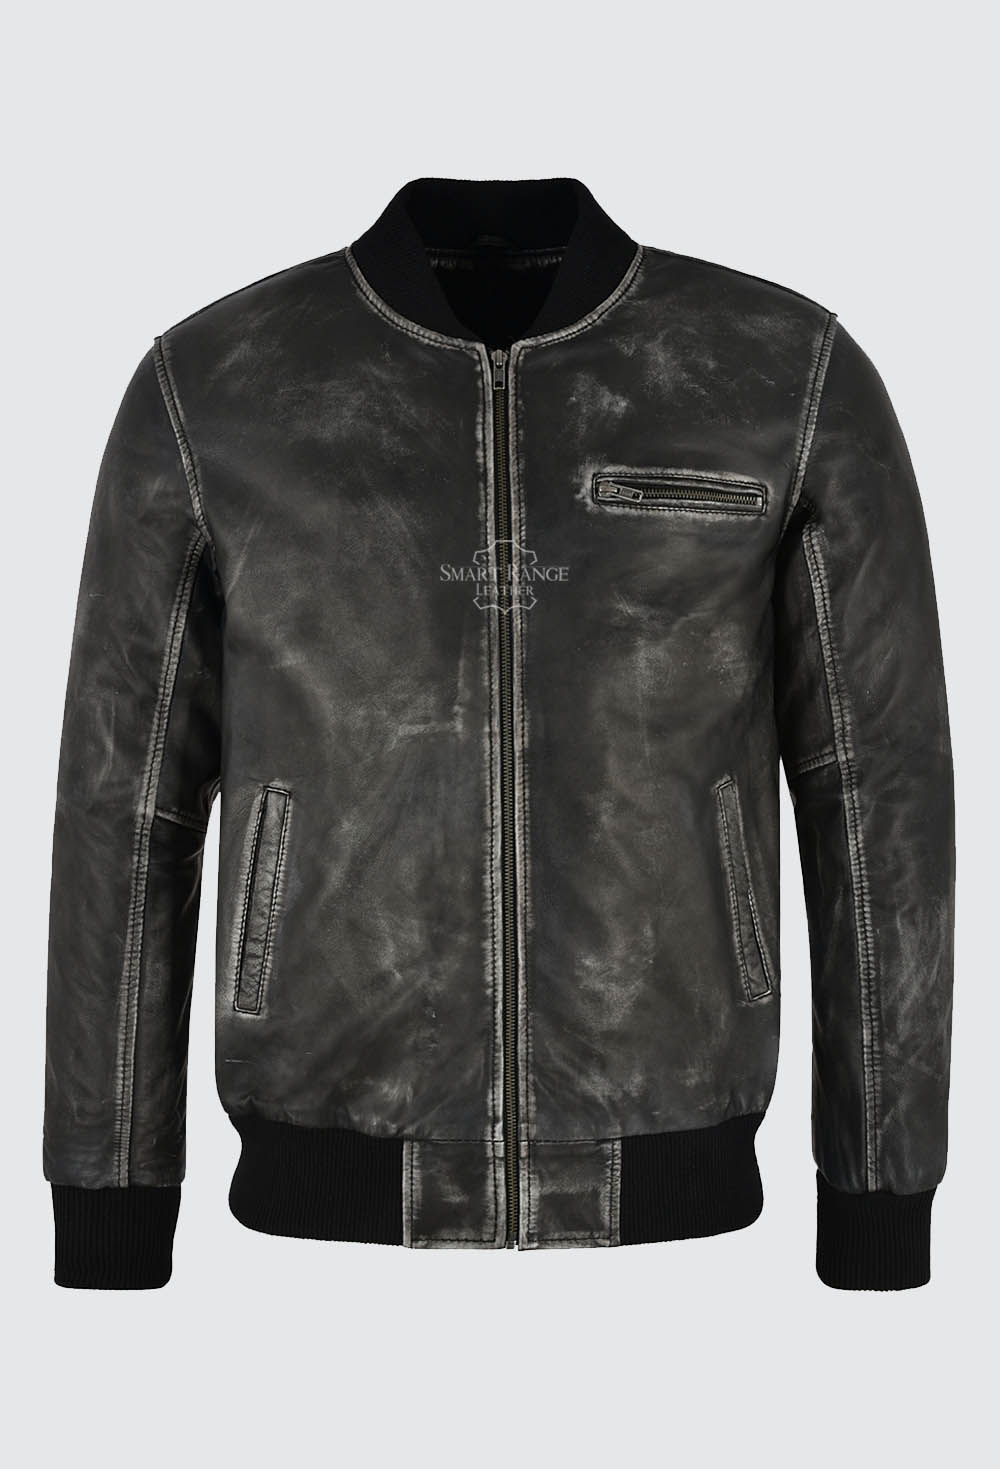 Bomber Jackets, Pilot Flying leather jackets, Bomber leather jackets, 70's leather jackets